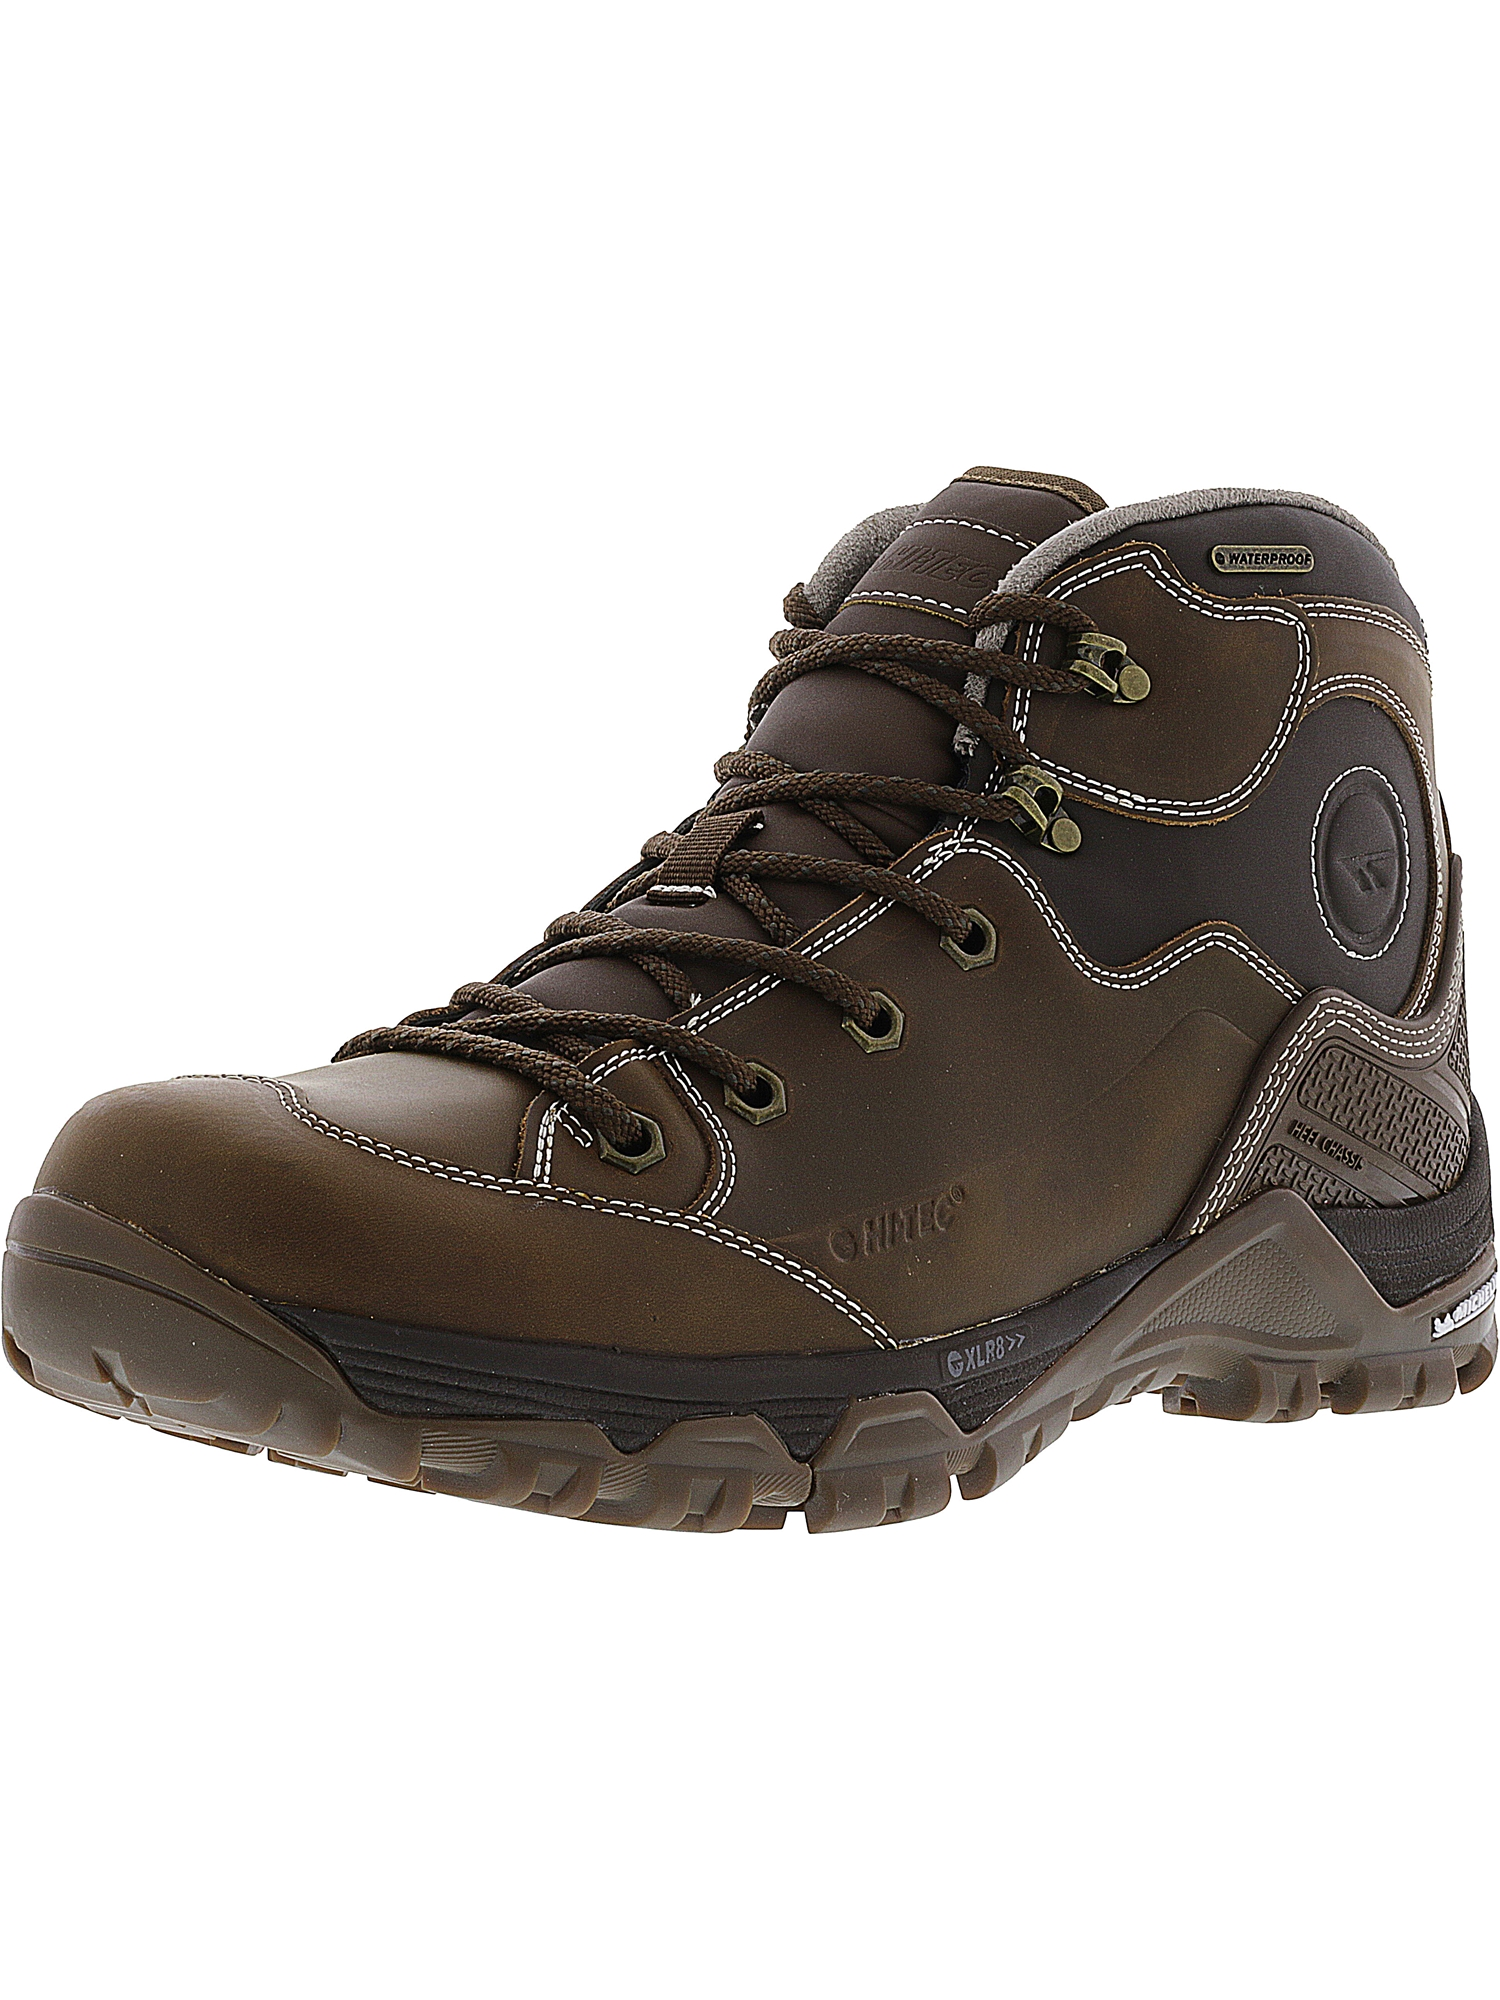 Hi-Tec Men's Ox Discovery Mid I Waterproof Brown High-Top Leather Boot 10.5M by Hi-Tec